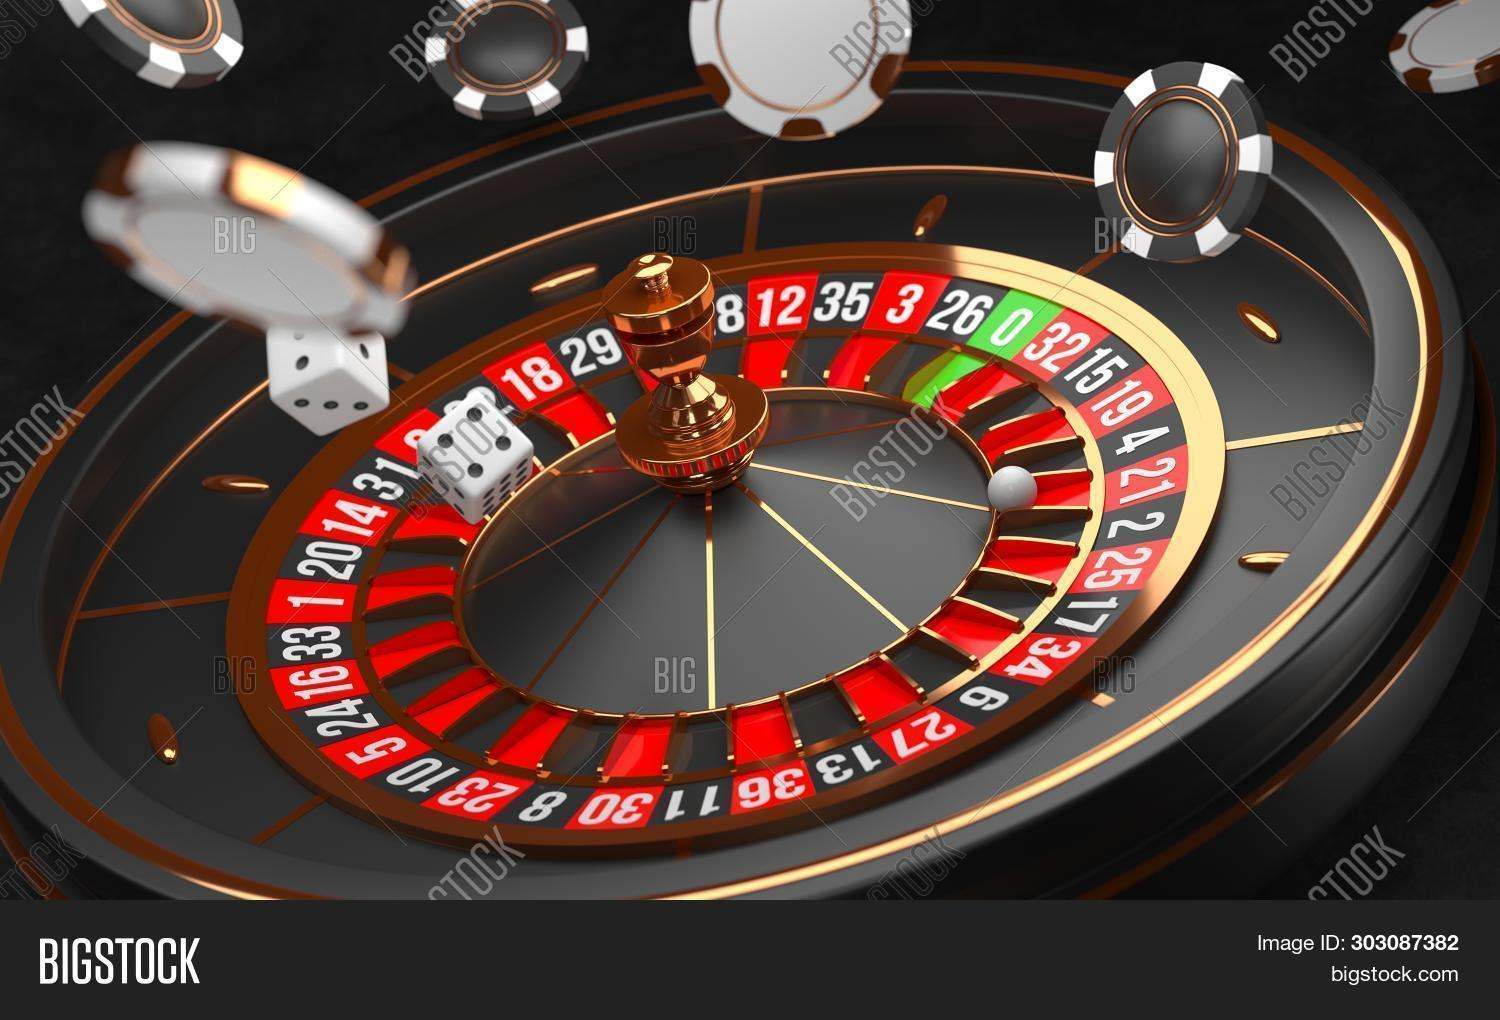 Top 7 Online Sports Betting Sites Best Sports books